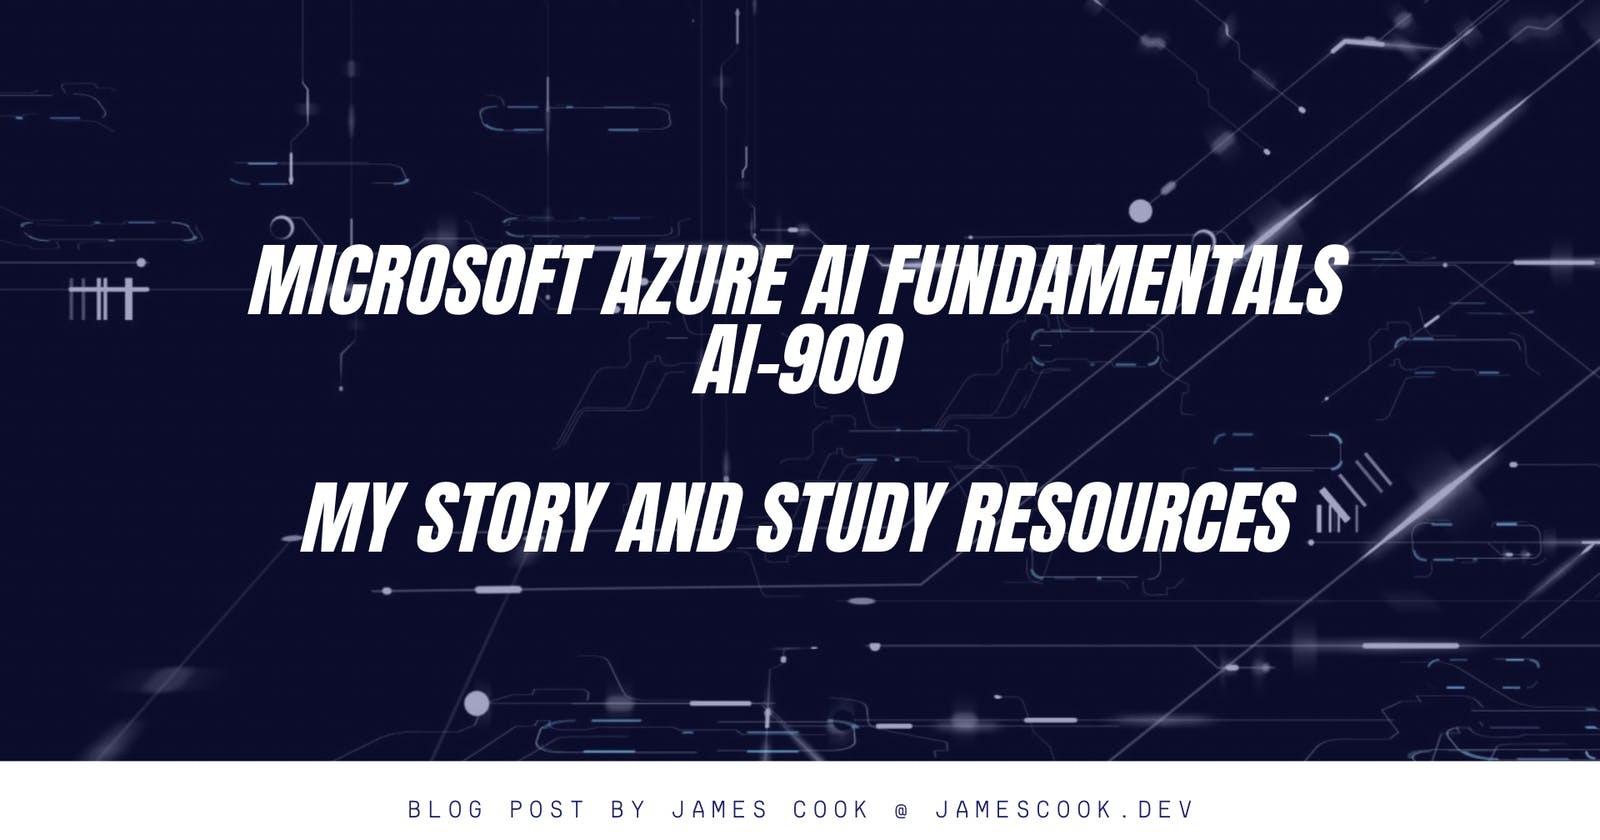 Azure AI Fundamentals (AI-900) - My Story and Study Resources